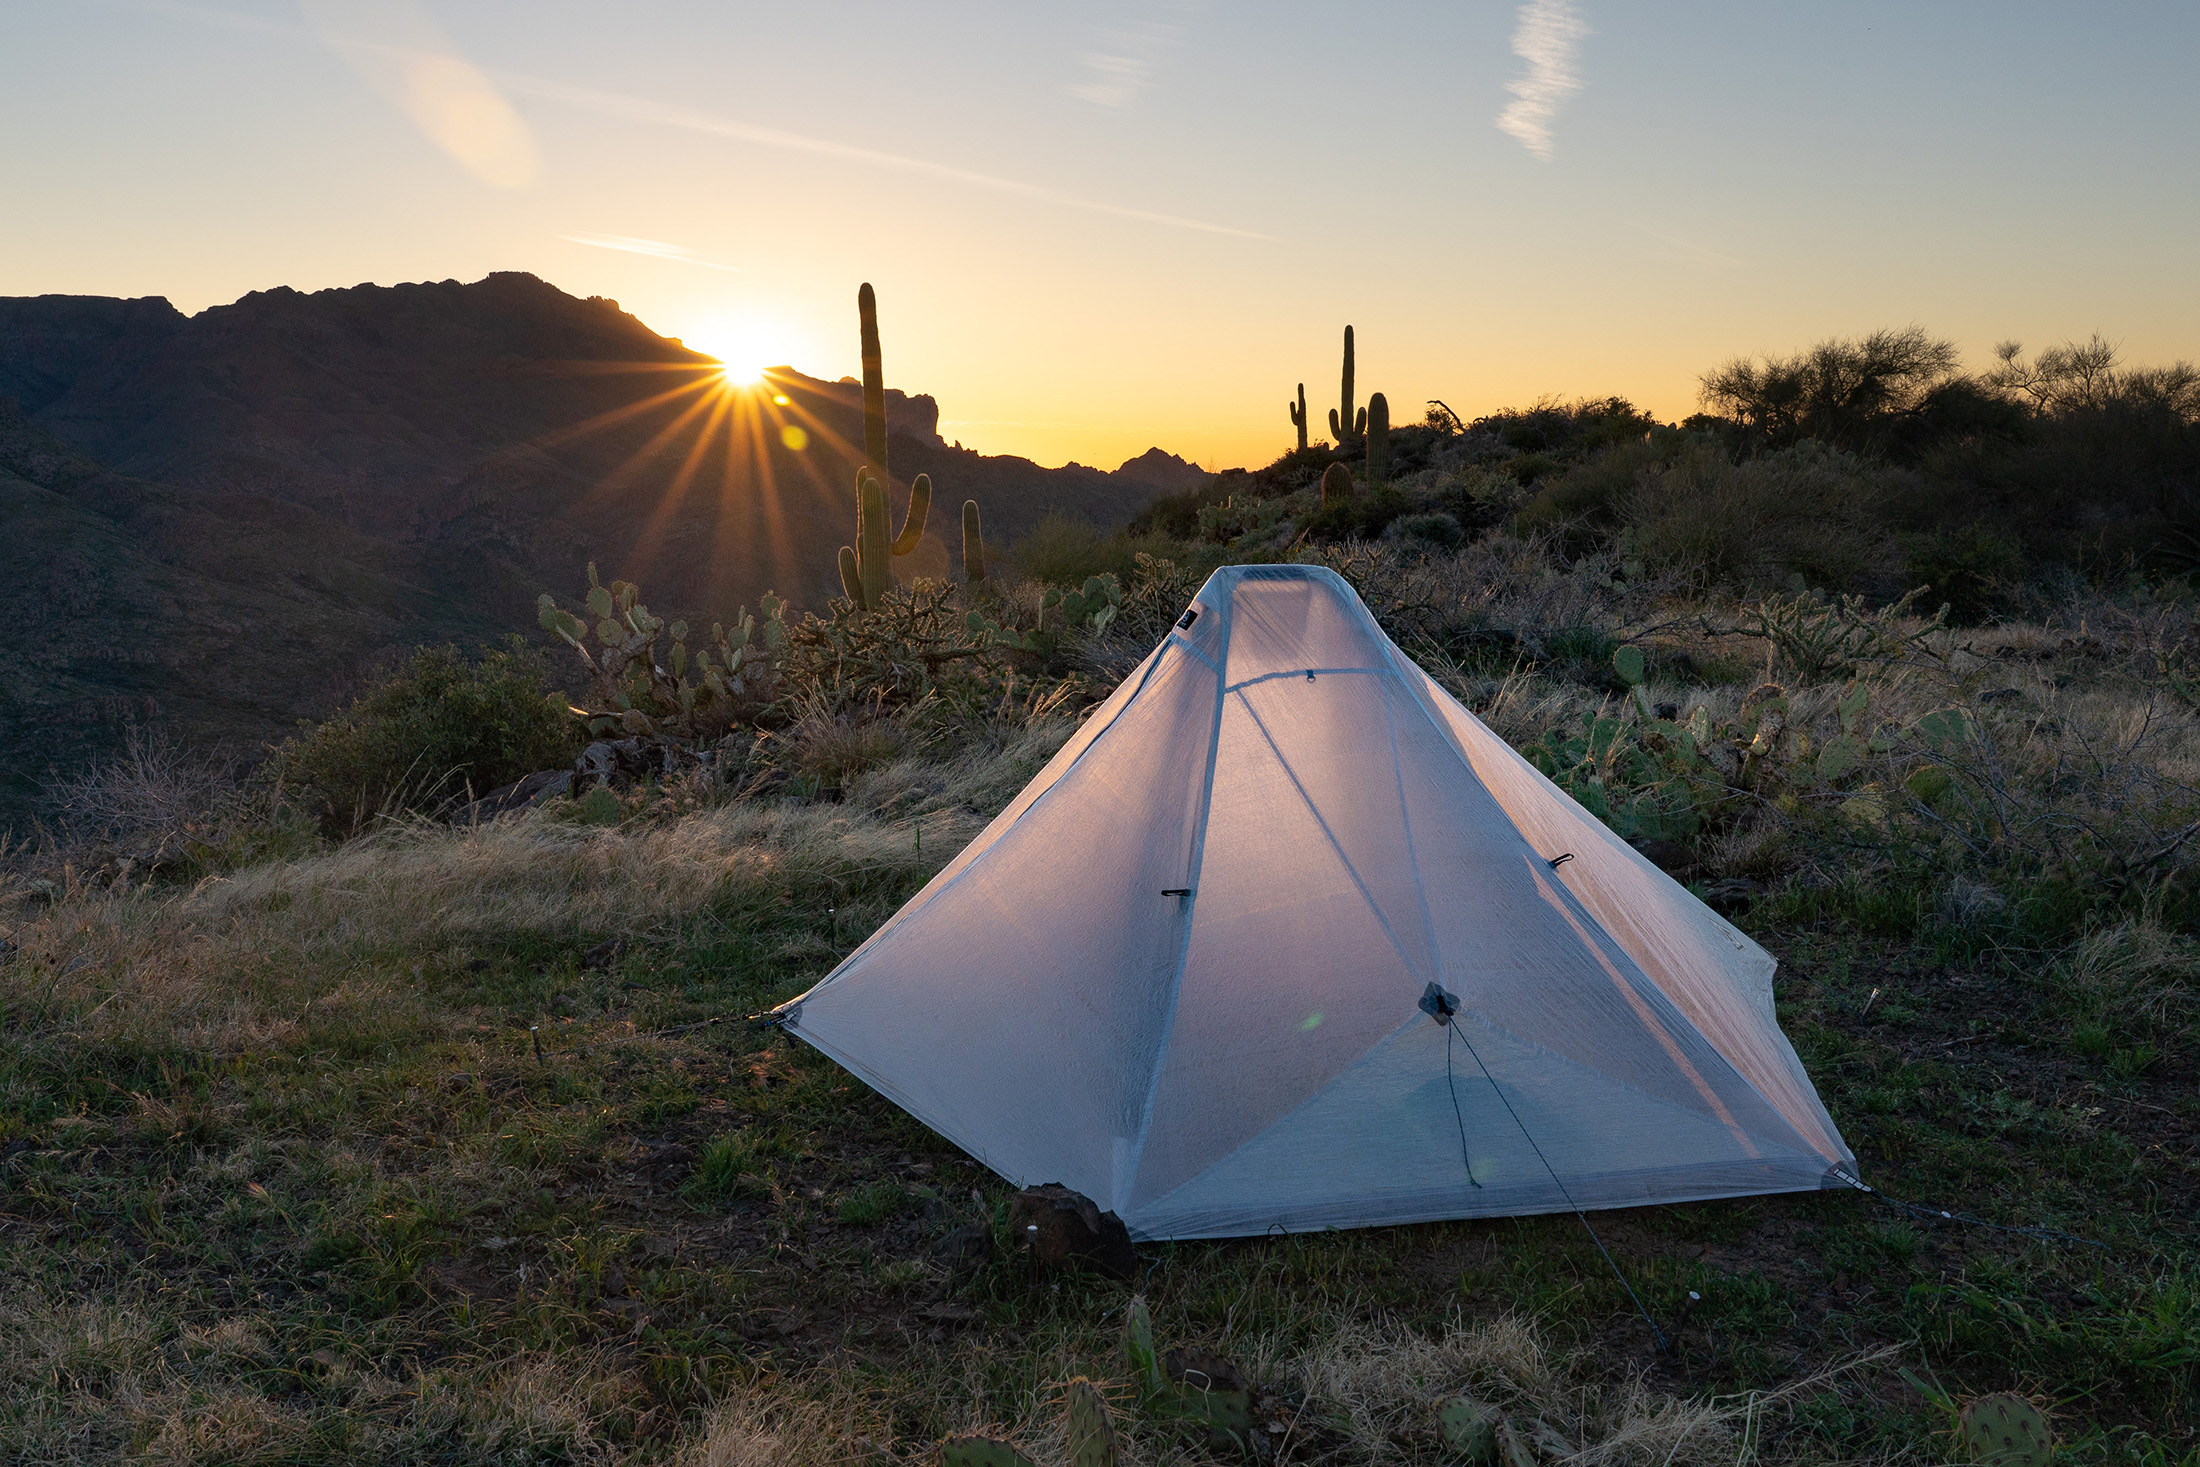 Hyperlite Mountain Gear Dirigo 2 tent